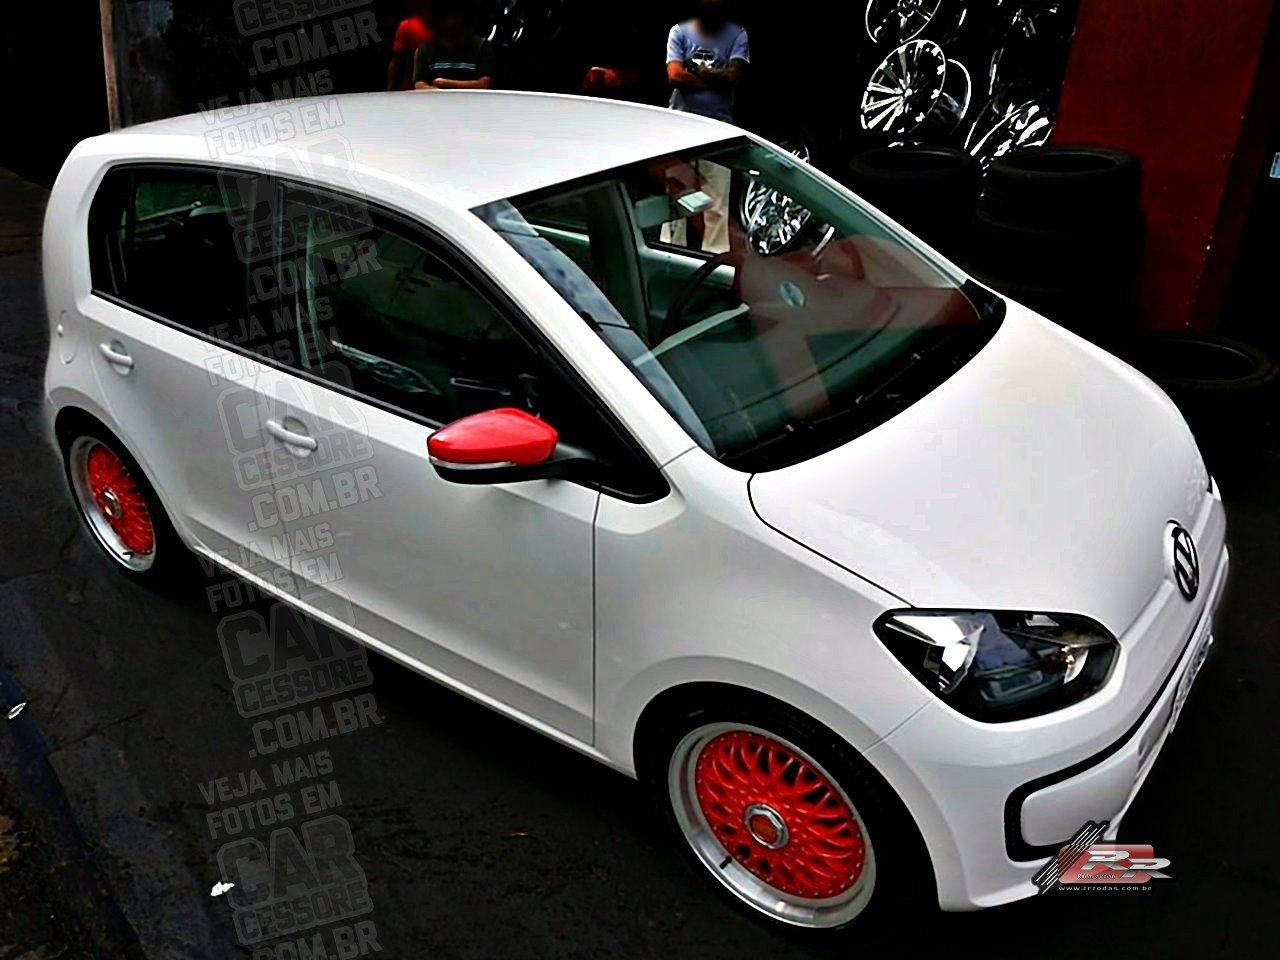 Vw up rebaixado com rodas bbs vermelhas aro 17 lowered white vw up